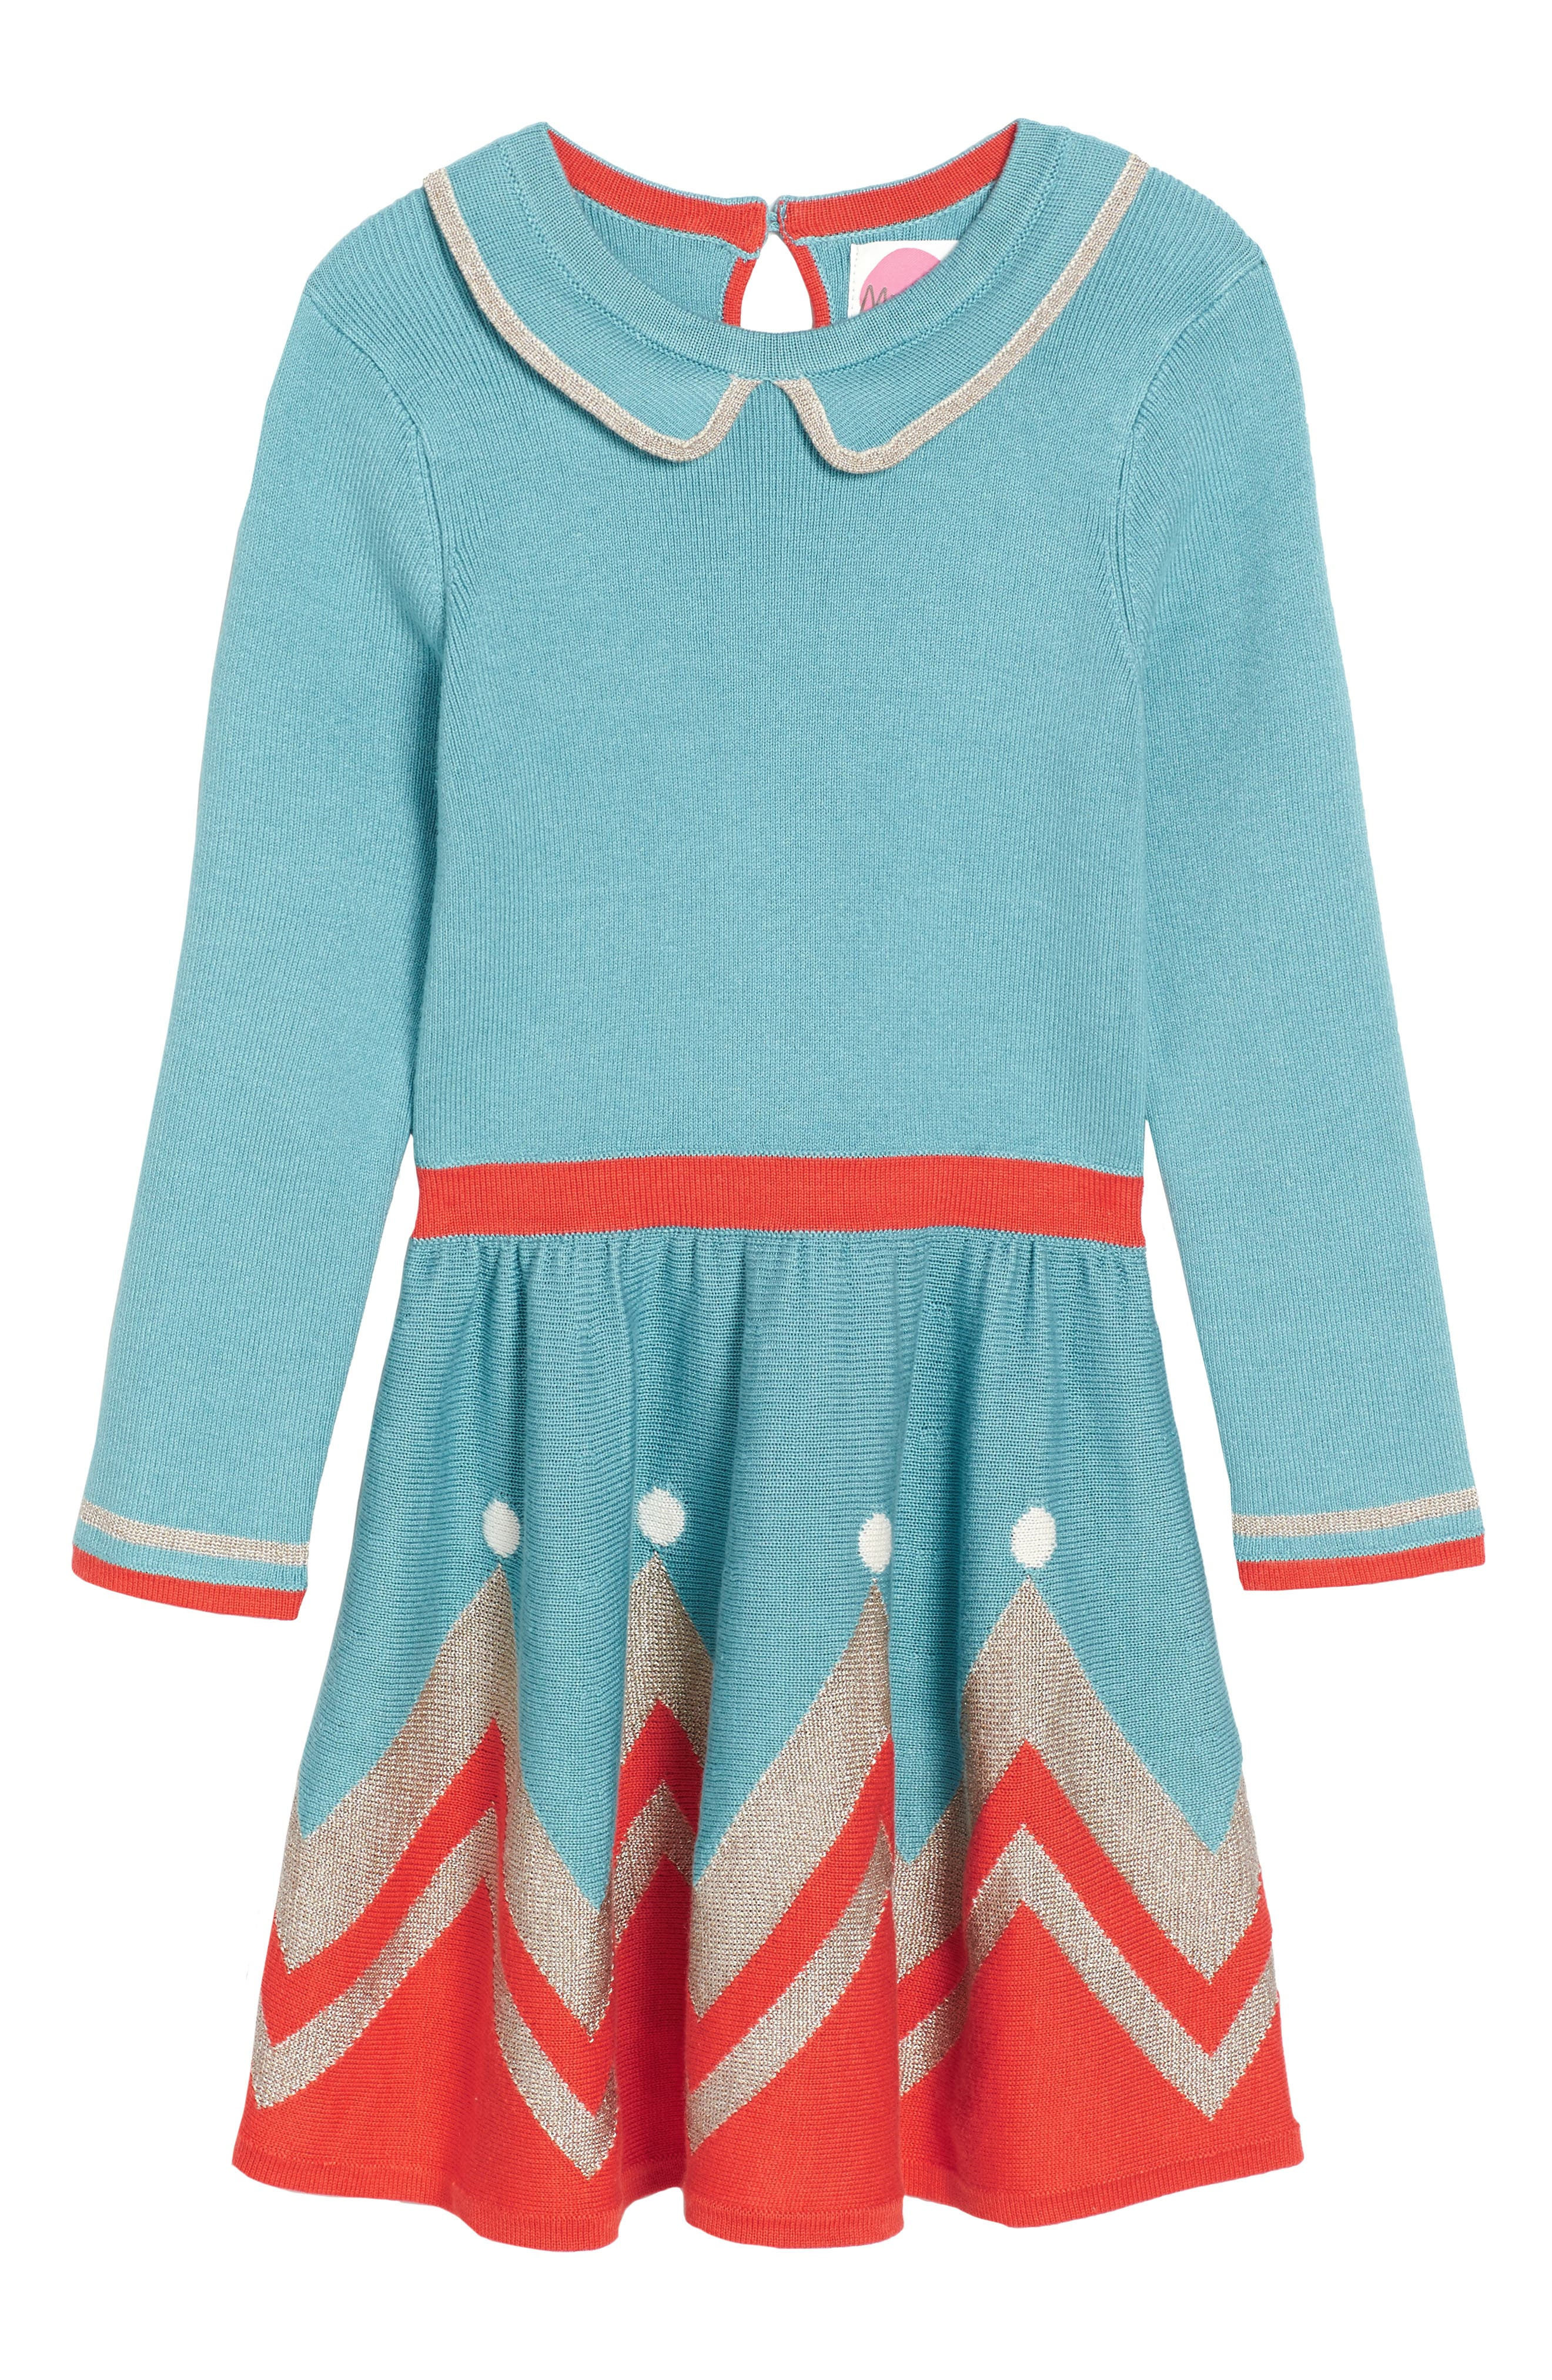 Main Image - Mini Boden Sparkly Intarsia Knit Dress (Toddler Girls, Little Girls & Big Girls)